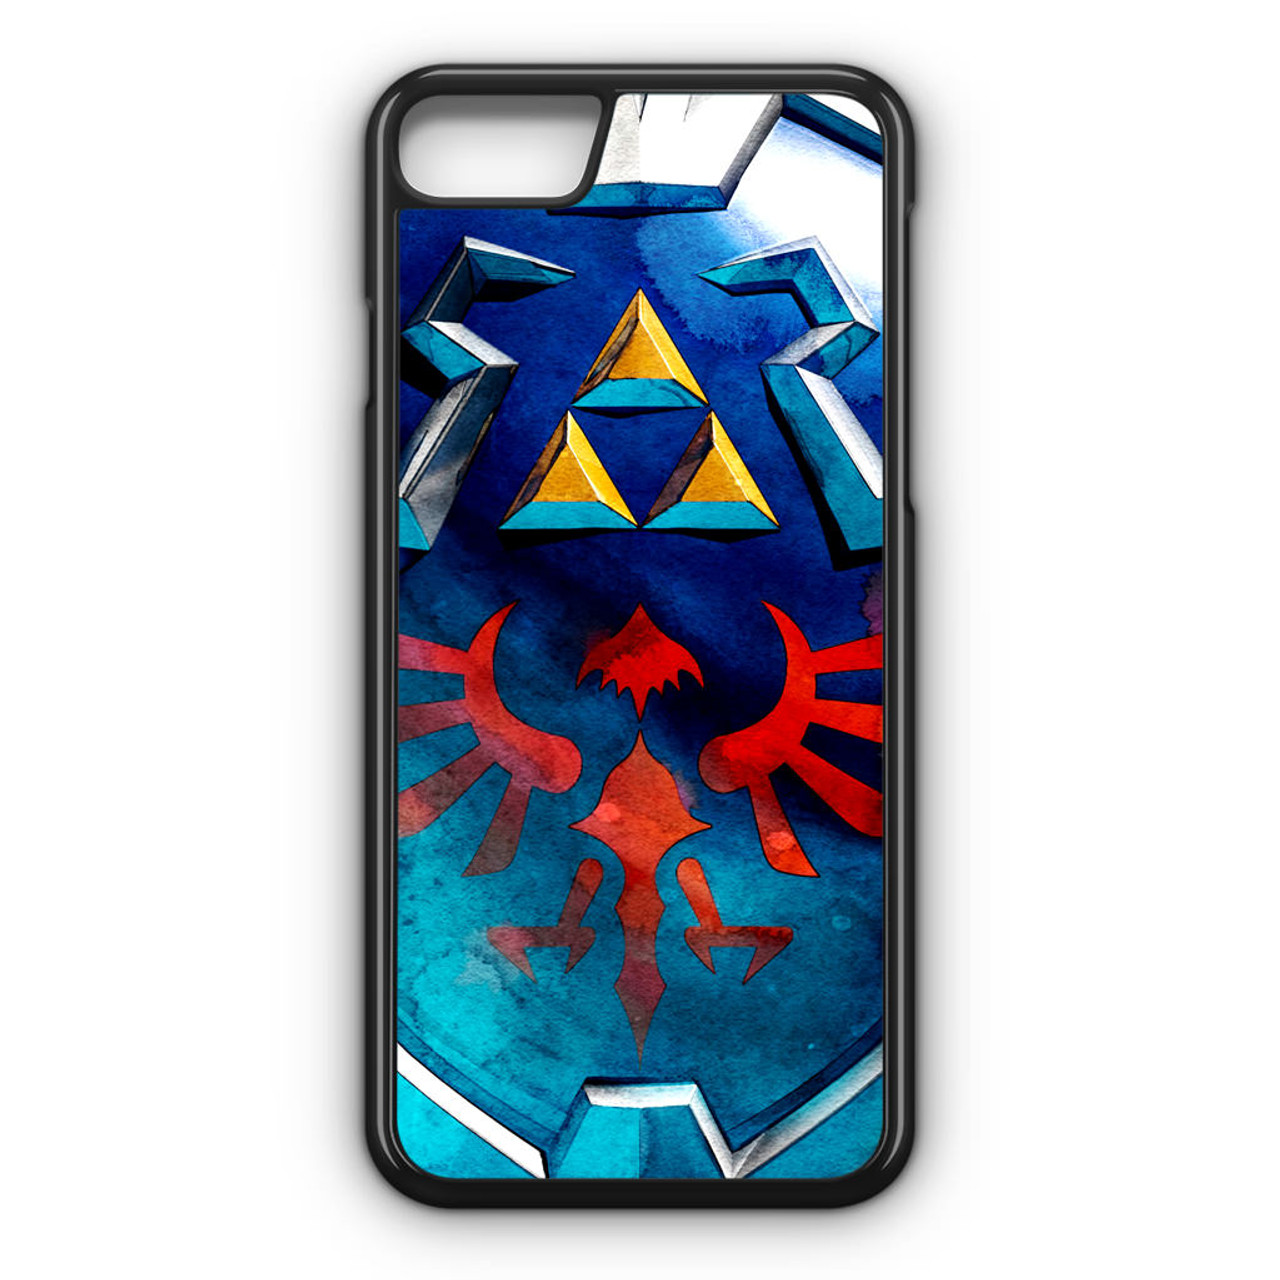 iphone 8 case link